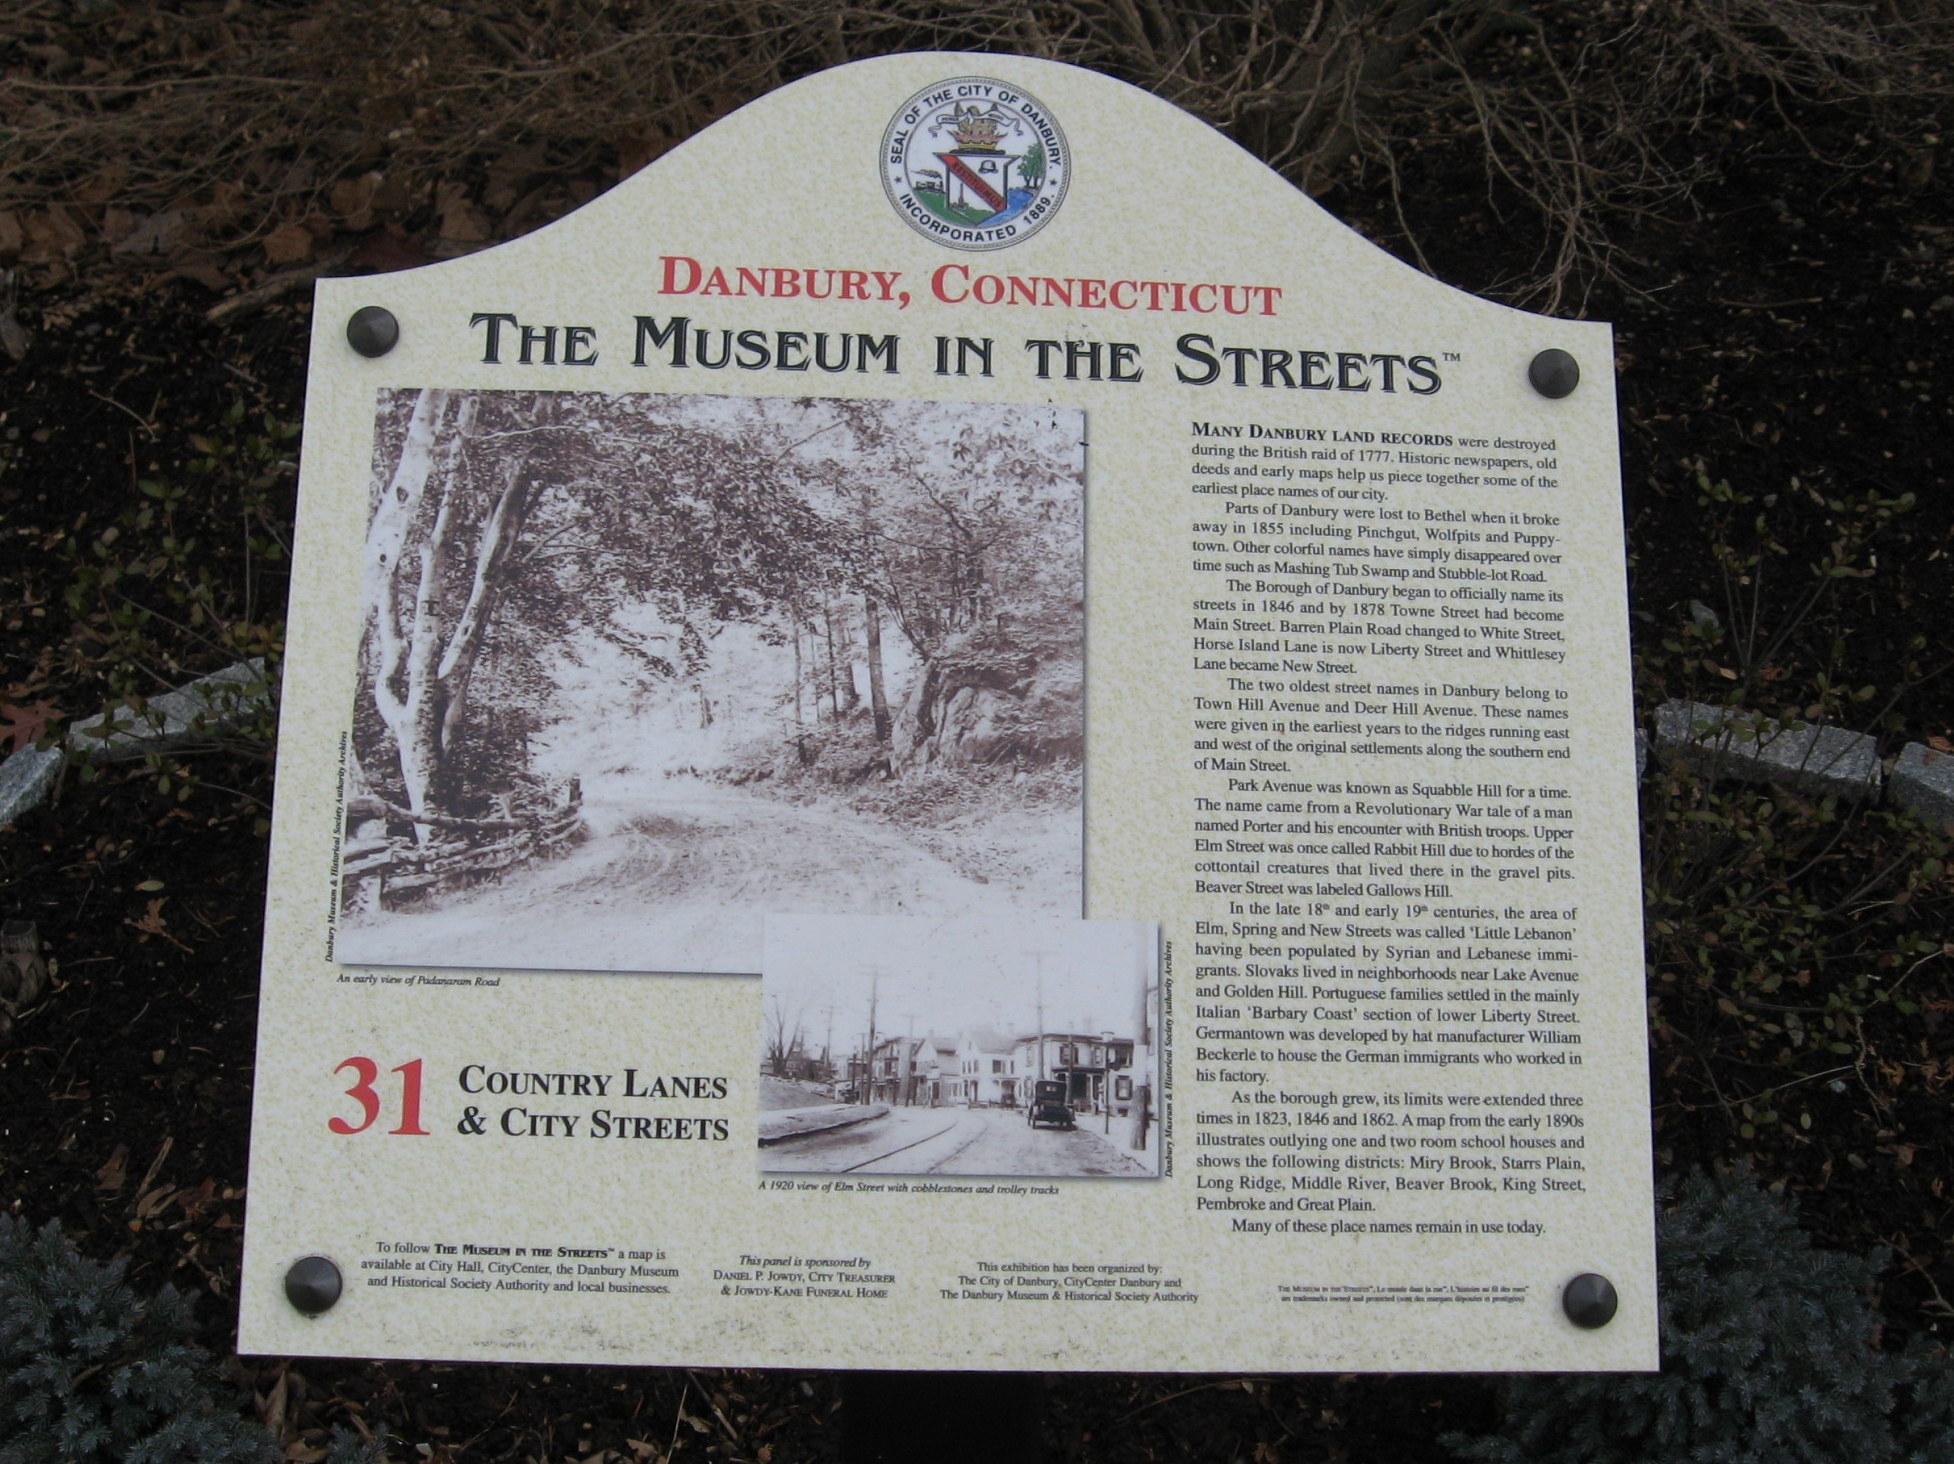 Country Lanes & City Streets Marker